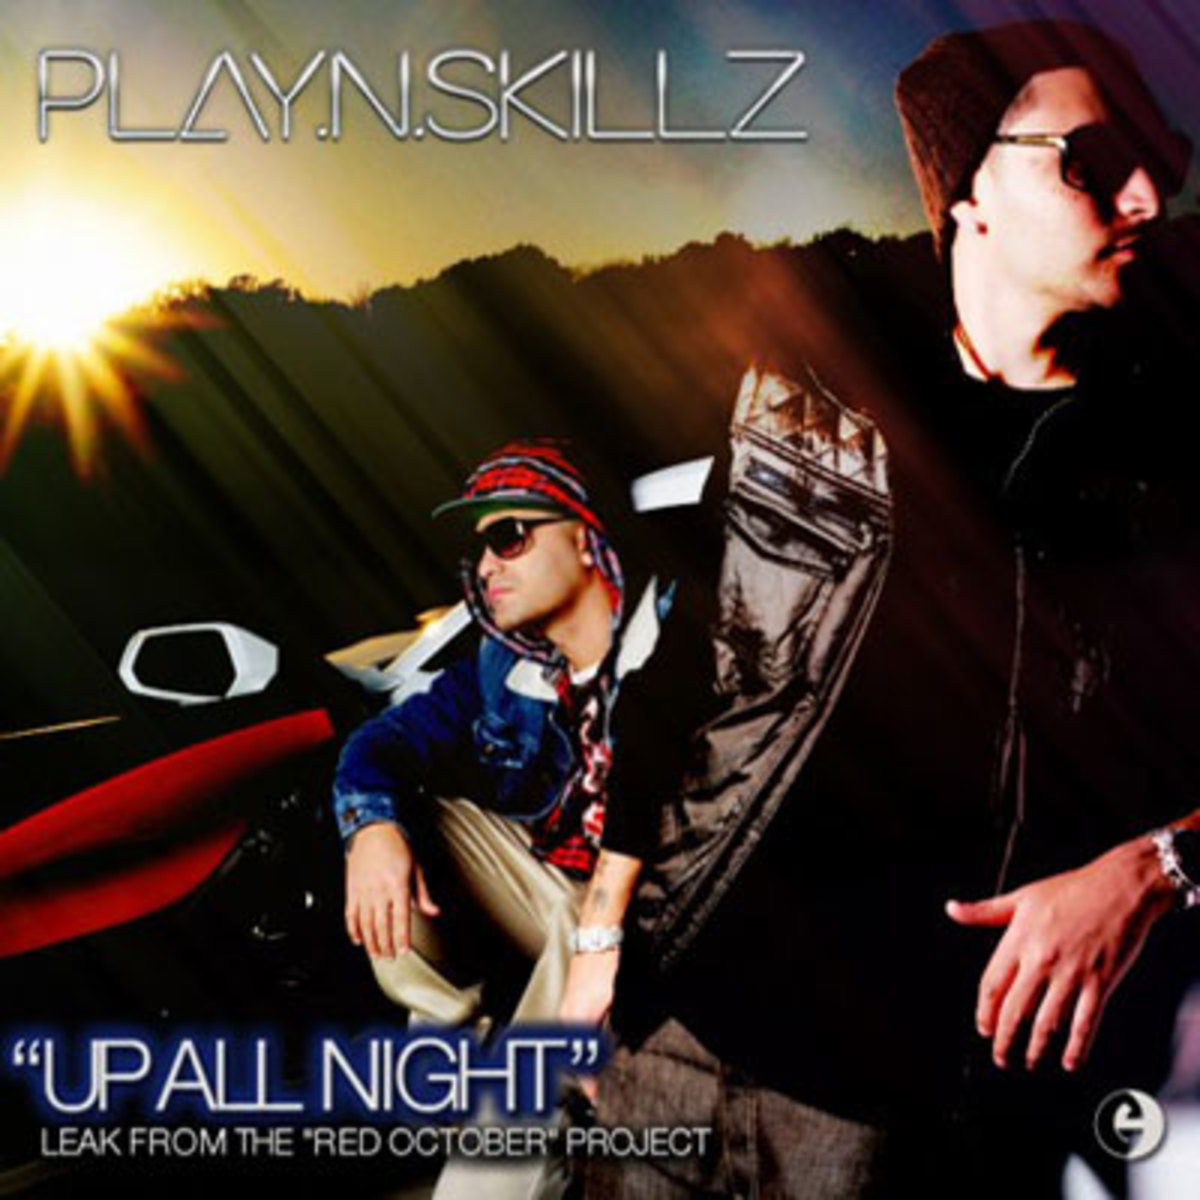 playnskillz-upallnight.jpg